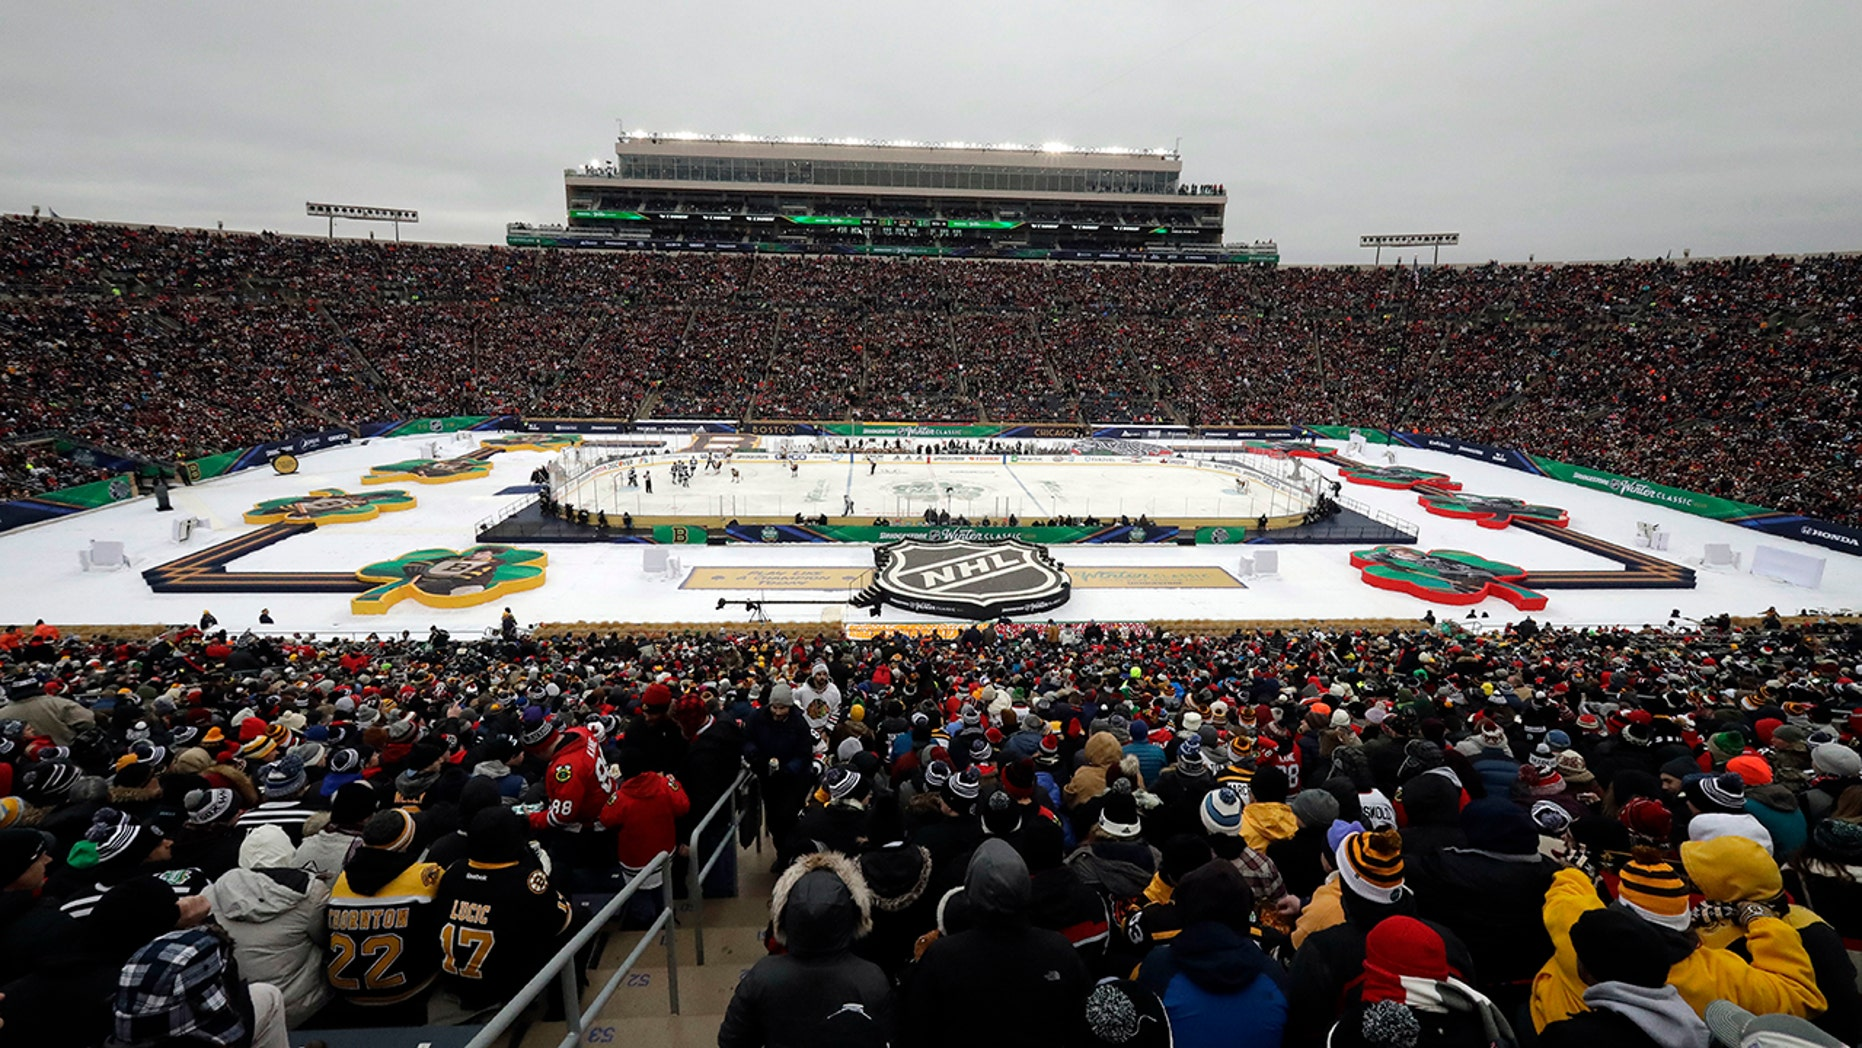 A general view of Notre Dame Stadium is seen in the second period of the NHL Winter Classic hockey game between the Boston Bruins and the Chicago Blackhawks, Tuesday, Jan. 1, 2019, in South Bend, Ind.